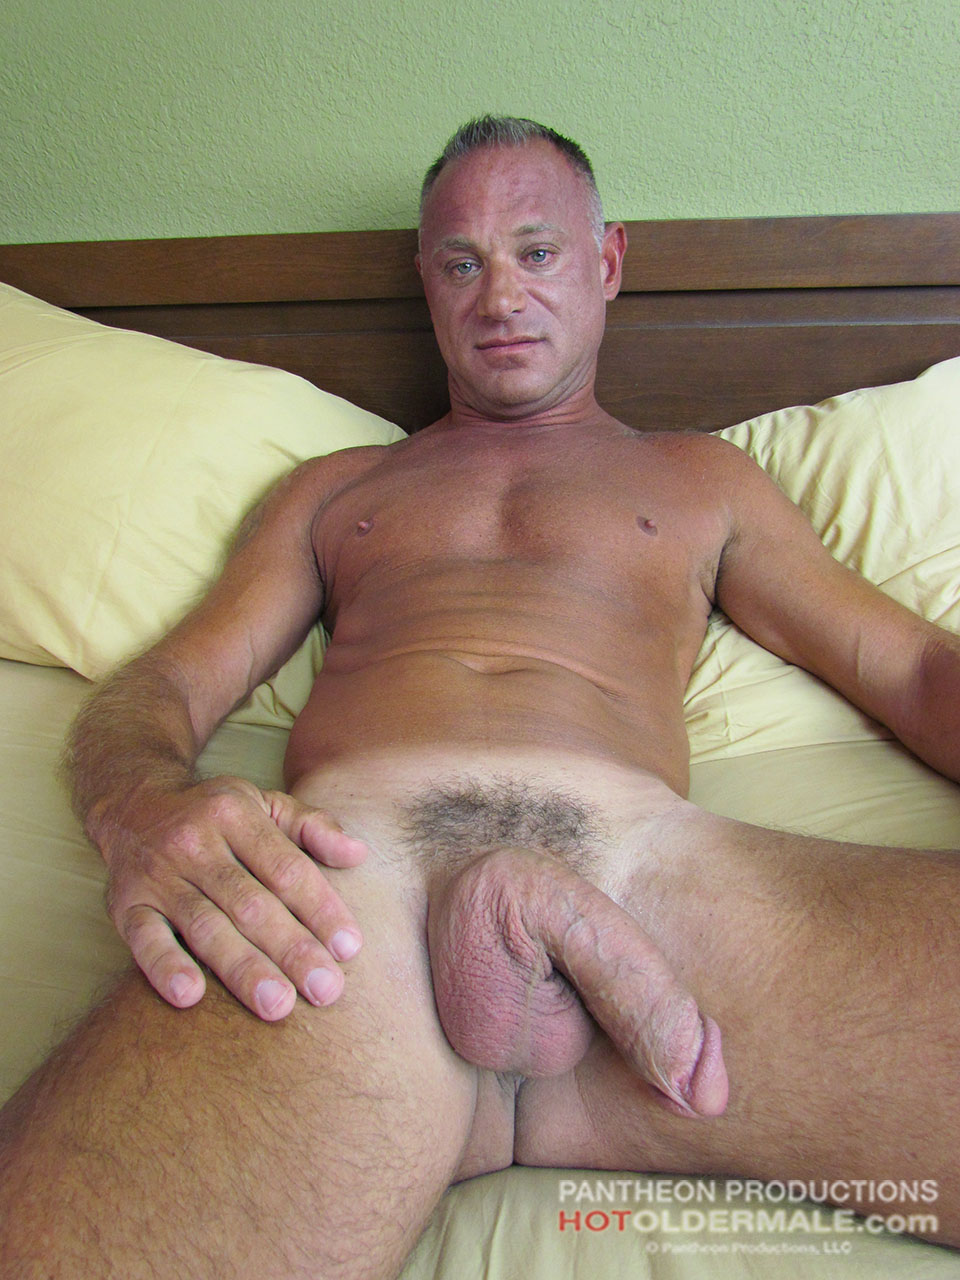 Hot Older Male Porn Videos